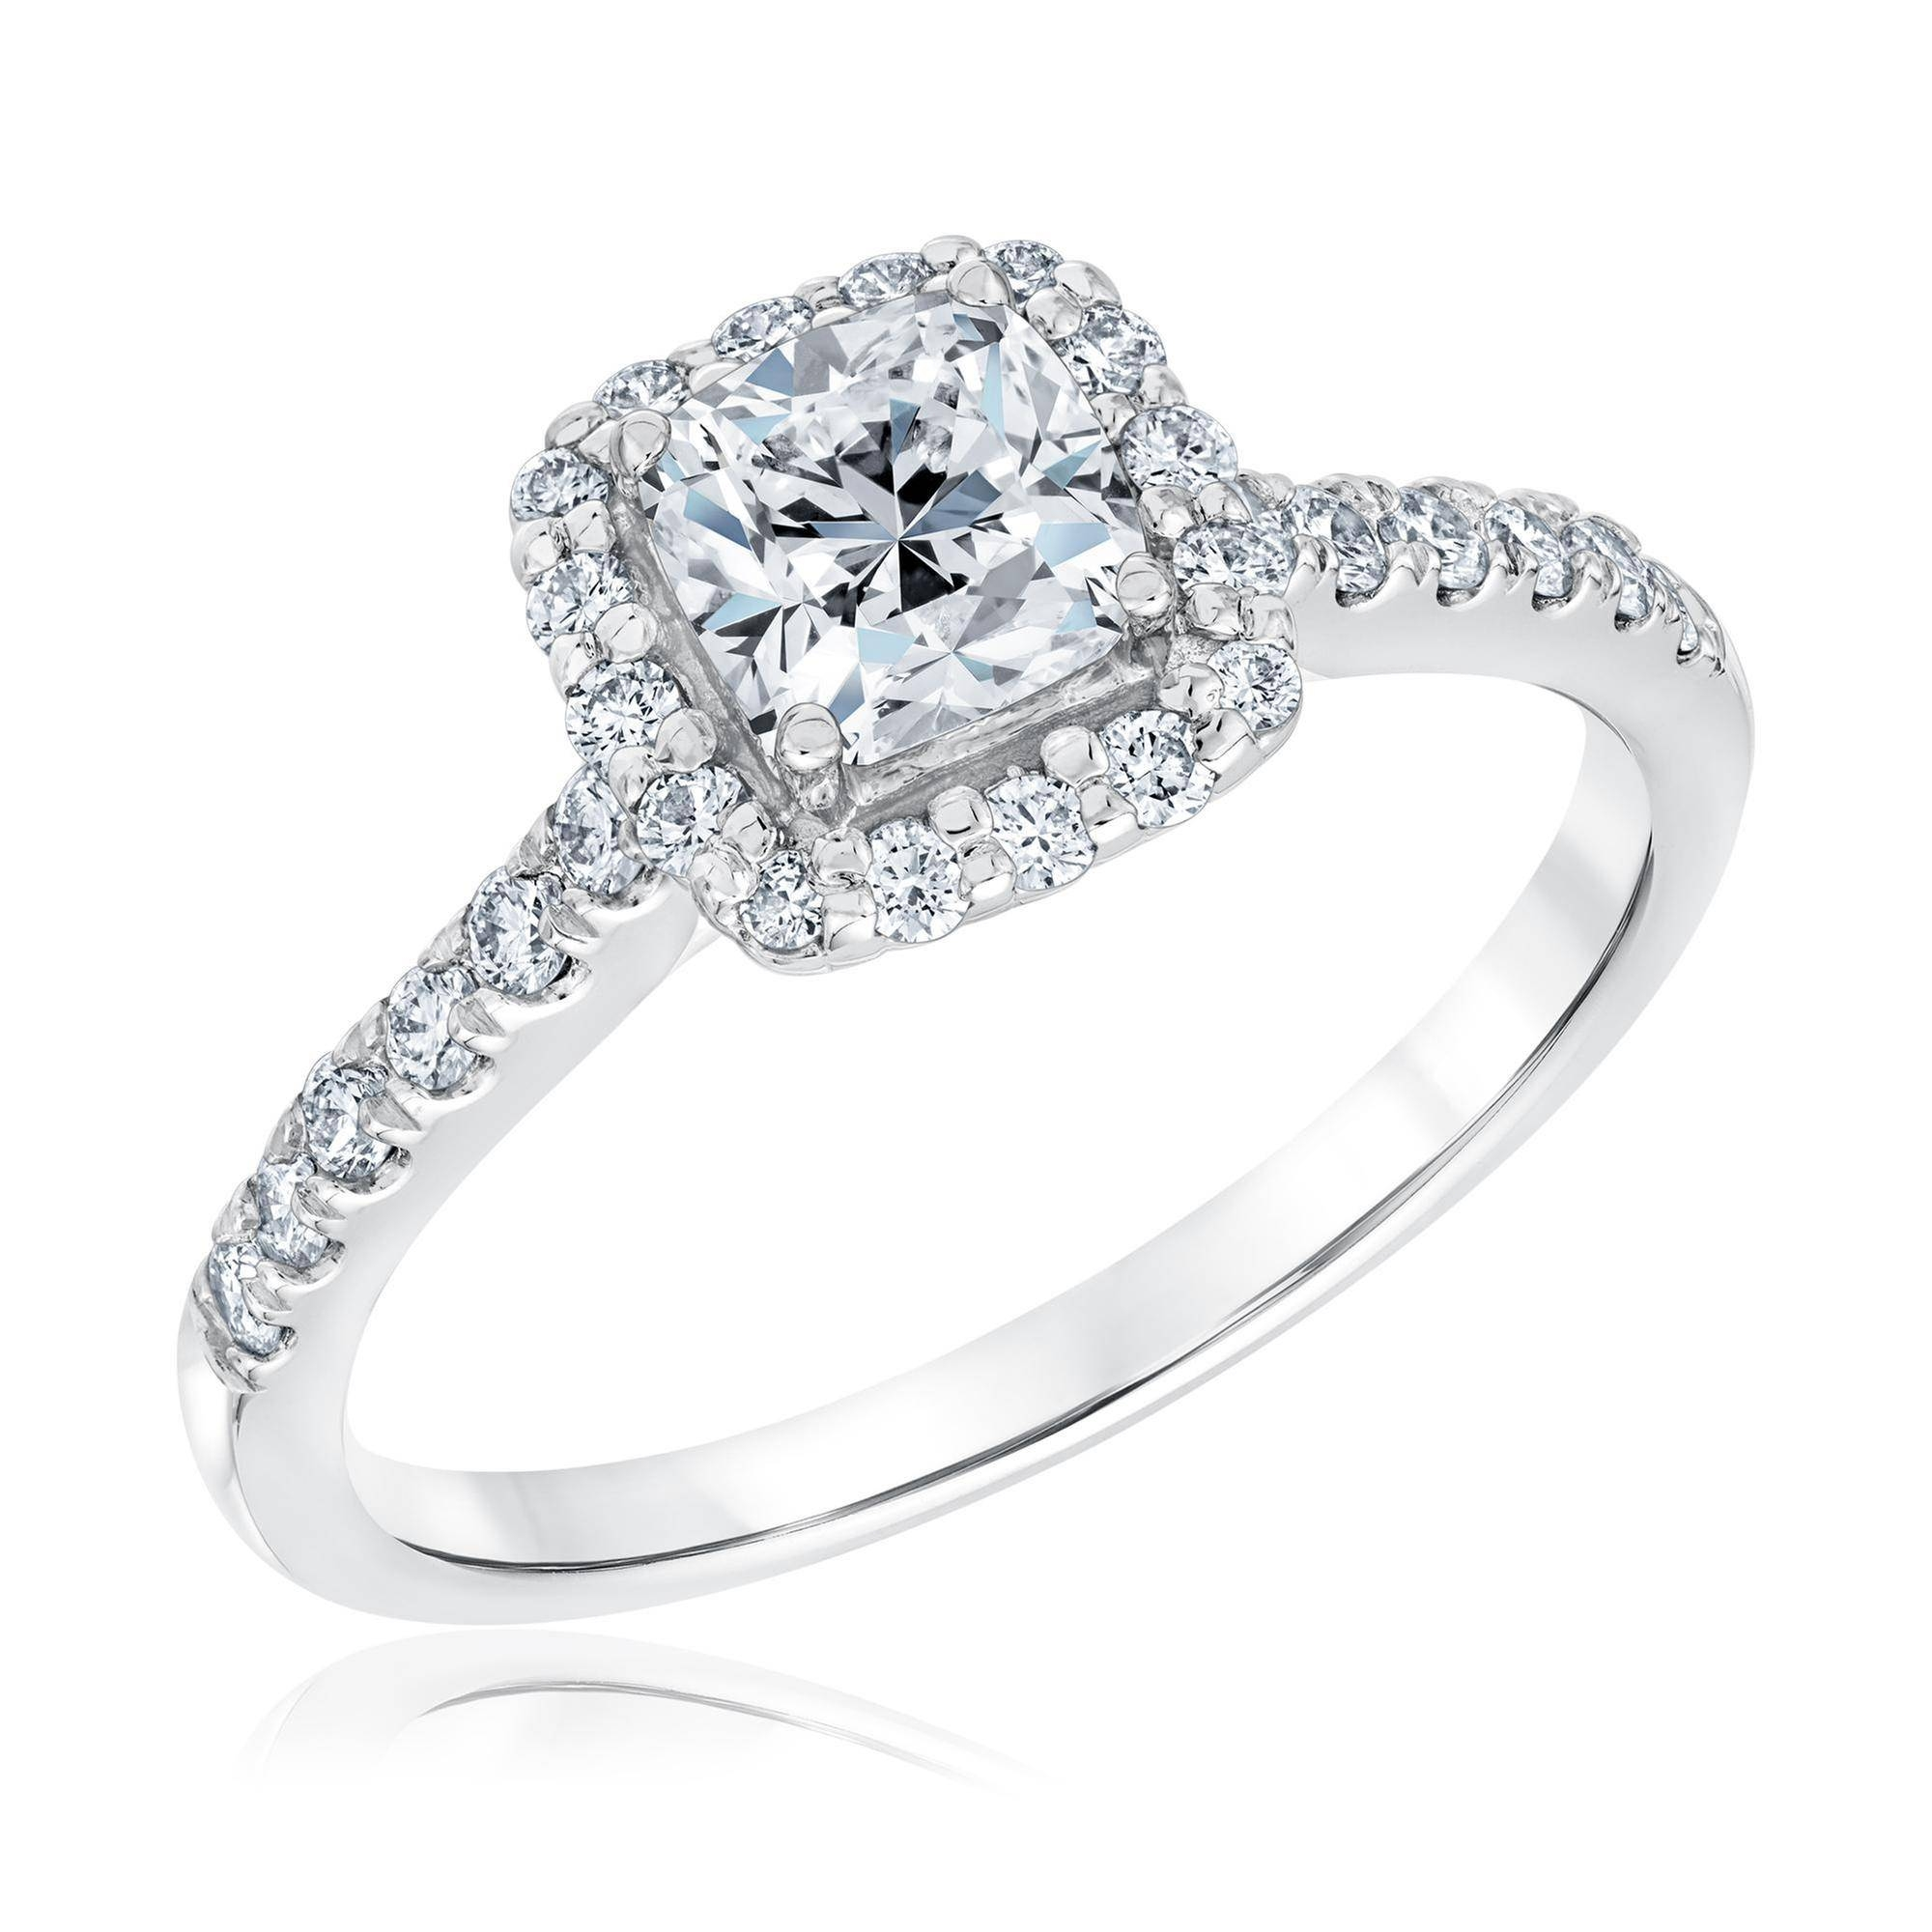 Diamond Engagement Rings San Diego Tags : Wedding Rings Tulsa Intended For San Diego Engagement Rings (View 4 of 15)